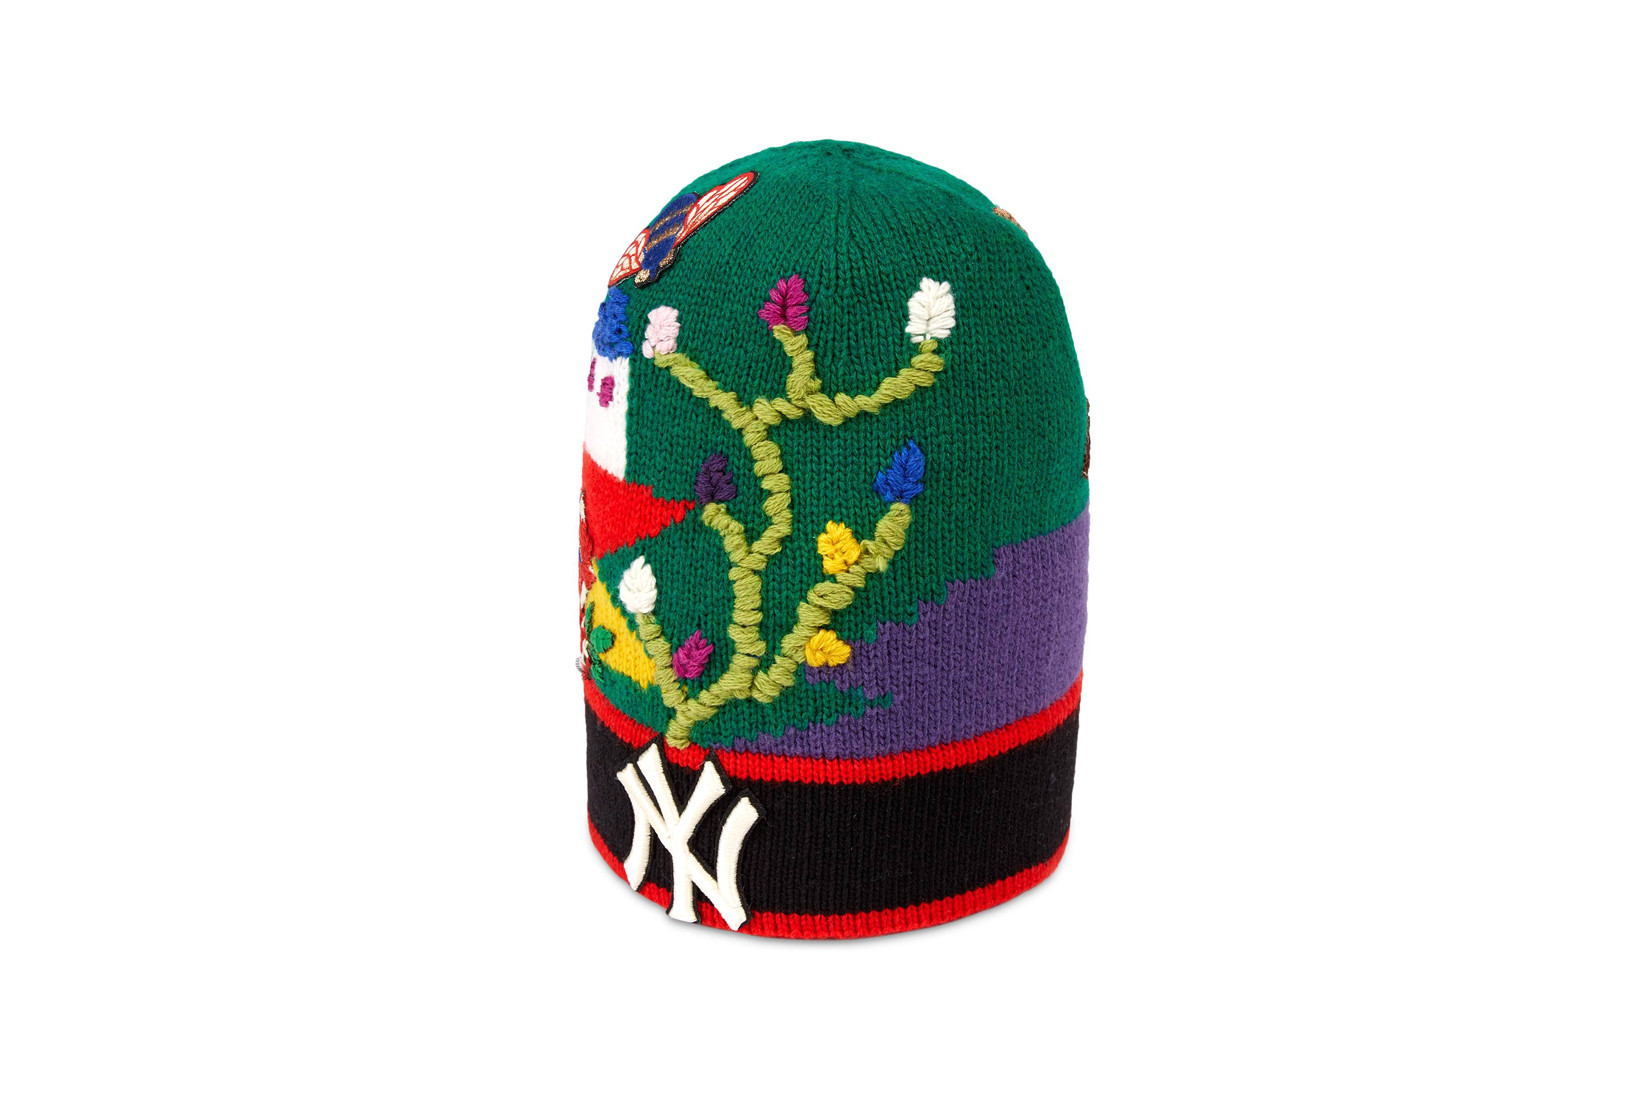 360ab70e The new Gucci x NY Yankees collab is available right now online. See the  rest of the set below: Images: Gucci